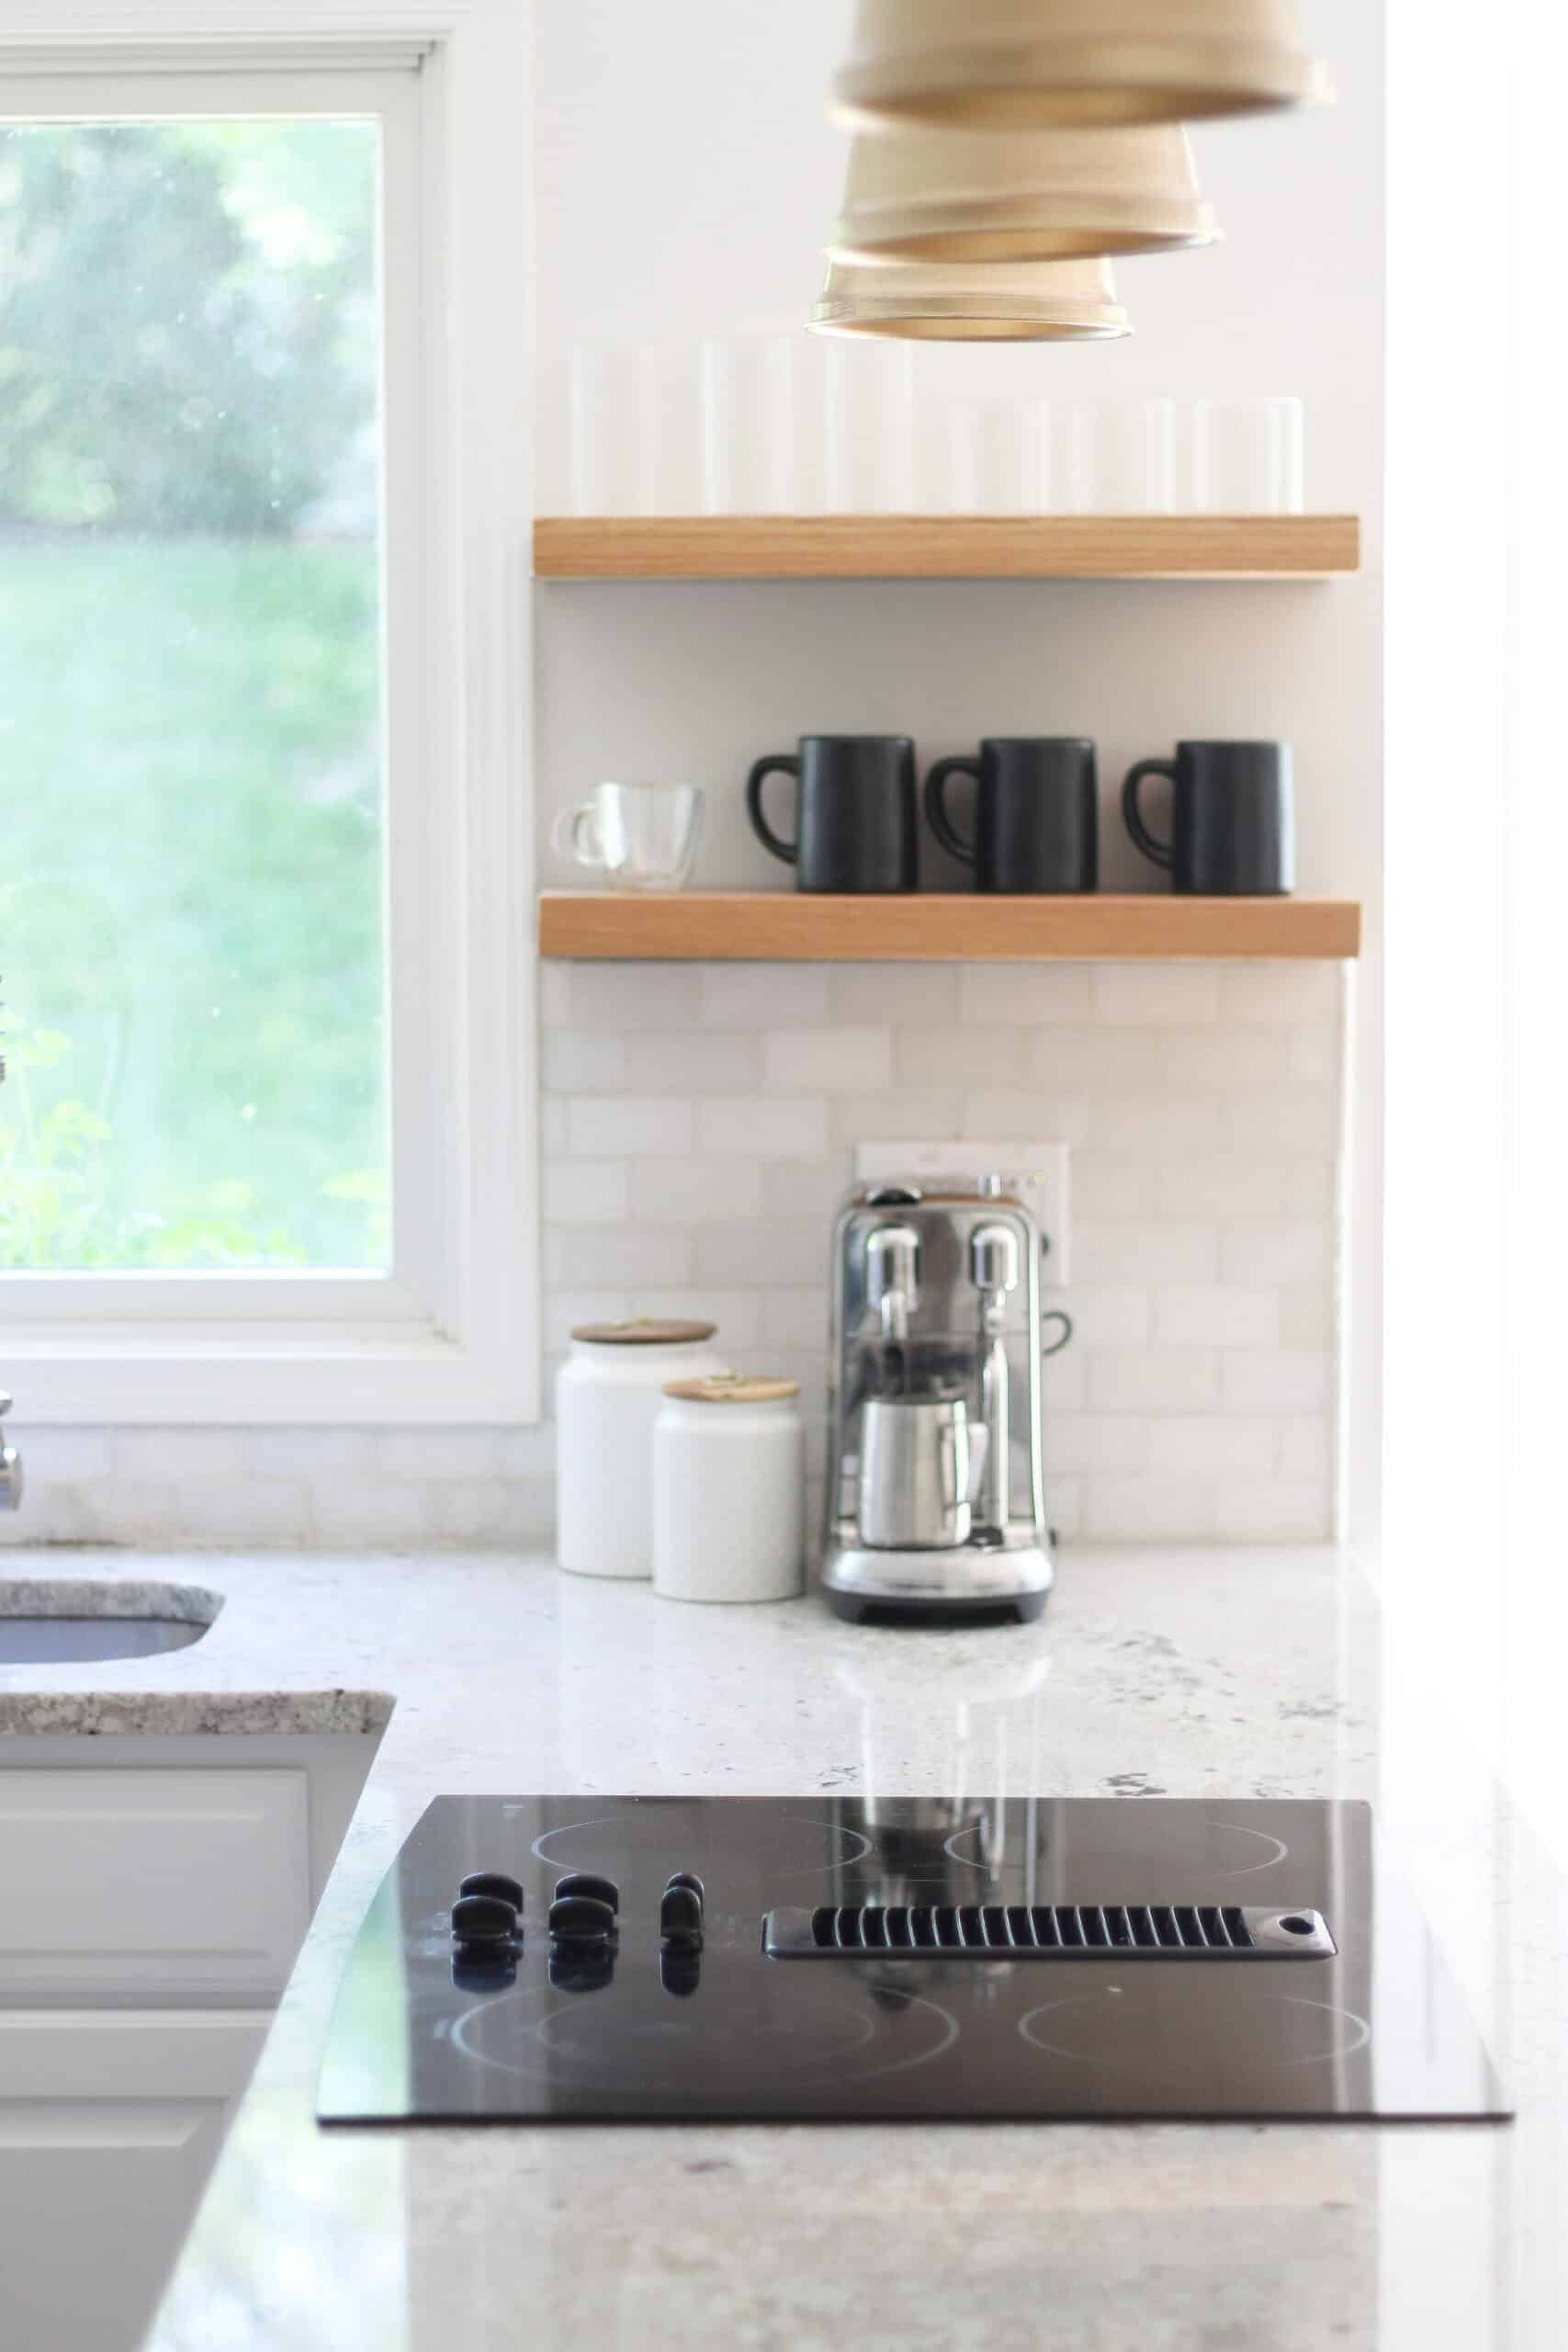 amazon cups and coffee cup in white kitchen